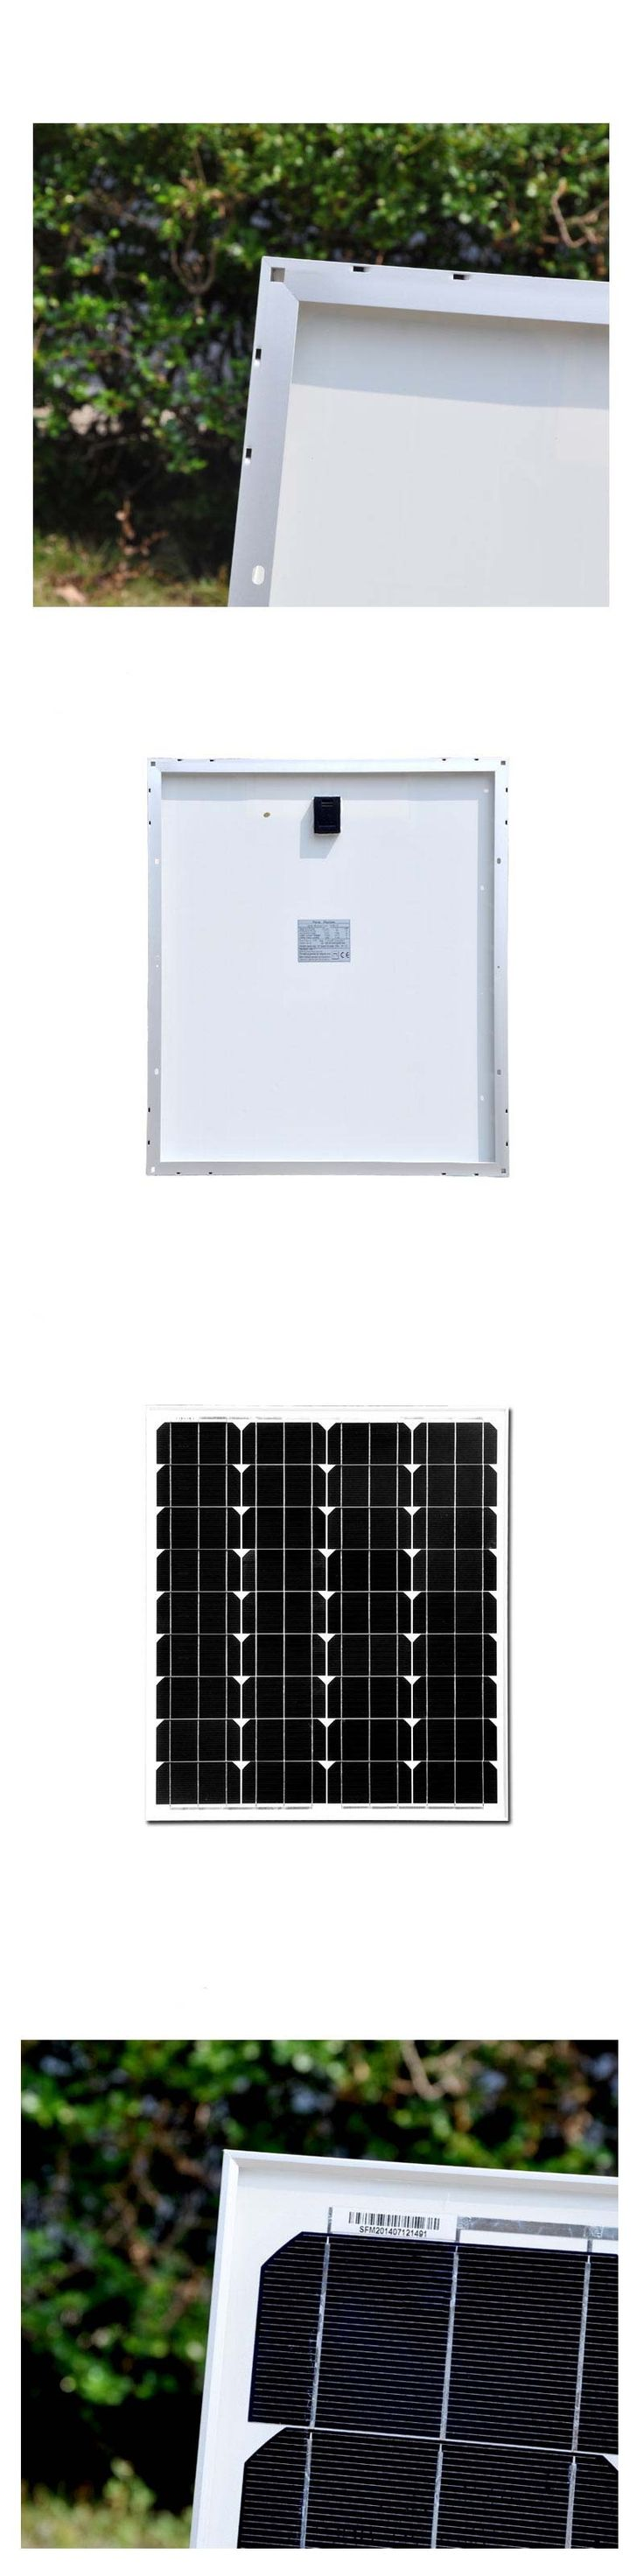 Cheap China 70 Watt 70w Monocrystalline Photovoltaic PV Solar Panel Module For Home 12 V Battery Charging  Solar Panels SFM70W